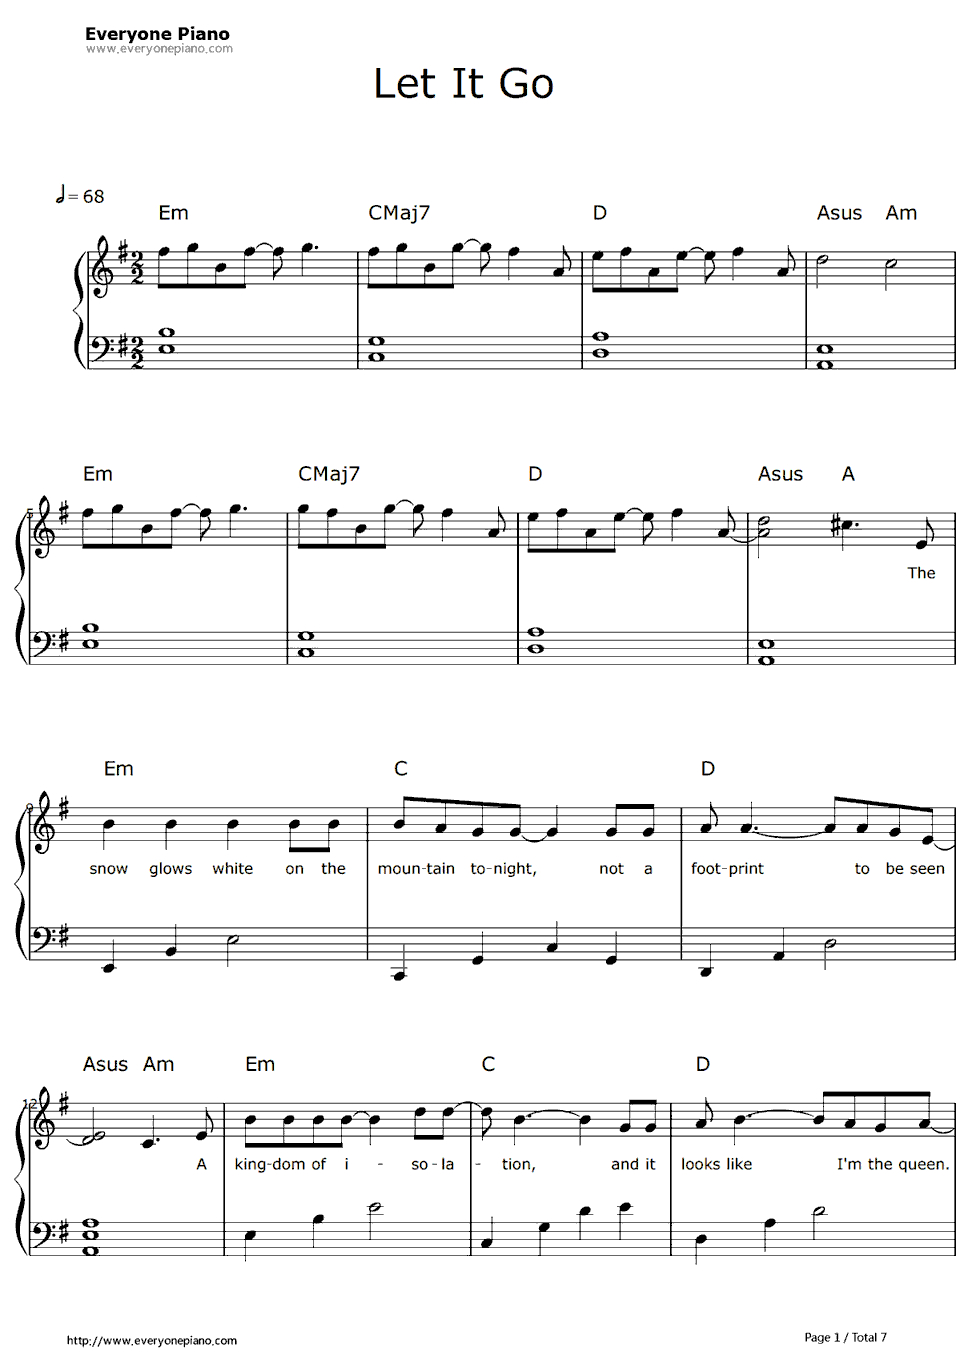 Free Let It Go Easy Version-Frozen Theme Sheet Music Preview 1 - Let It Go Piano Sheet Music Free Printable